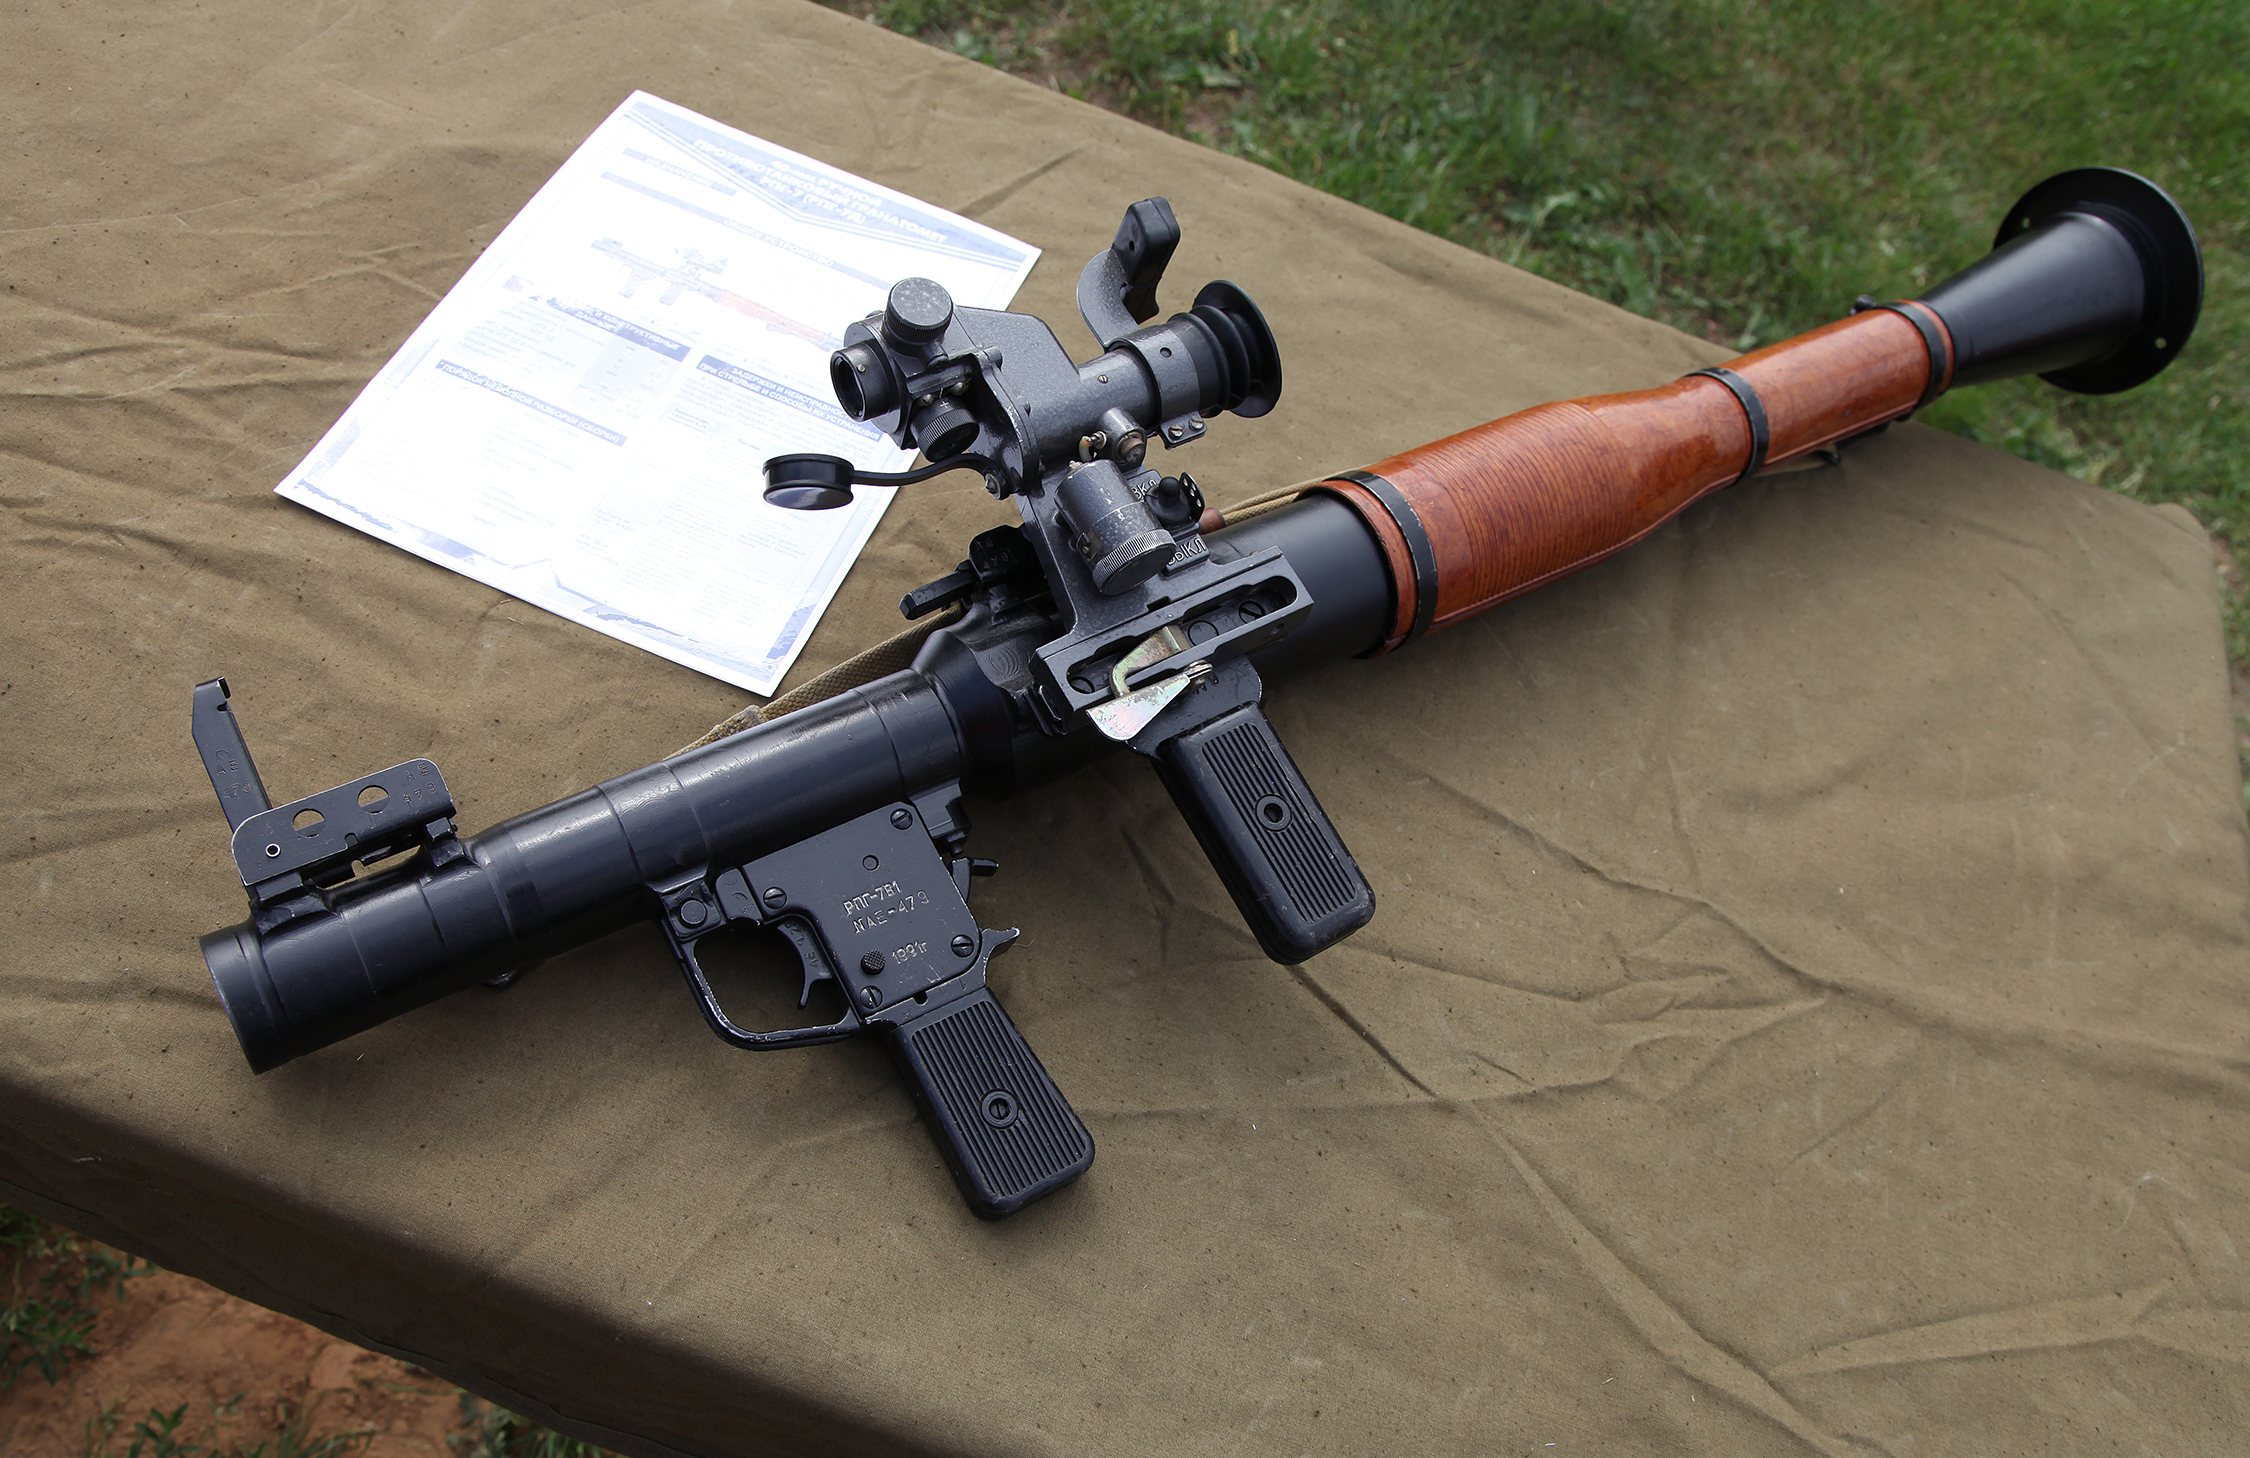 File:RPG-7V1 grenade launcher - RaceofHeroes-part2-22.jpg